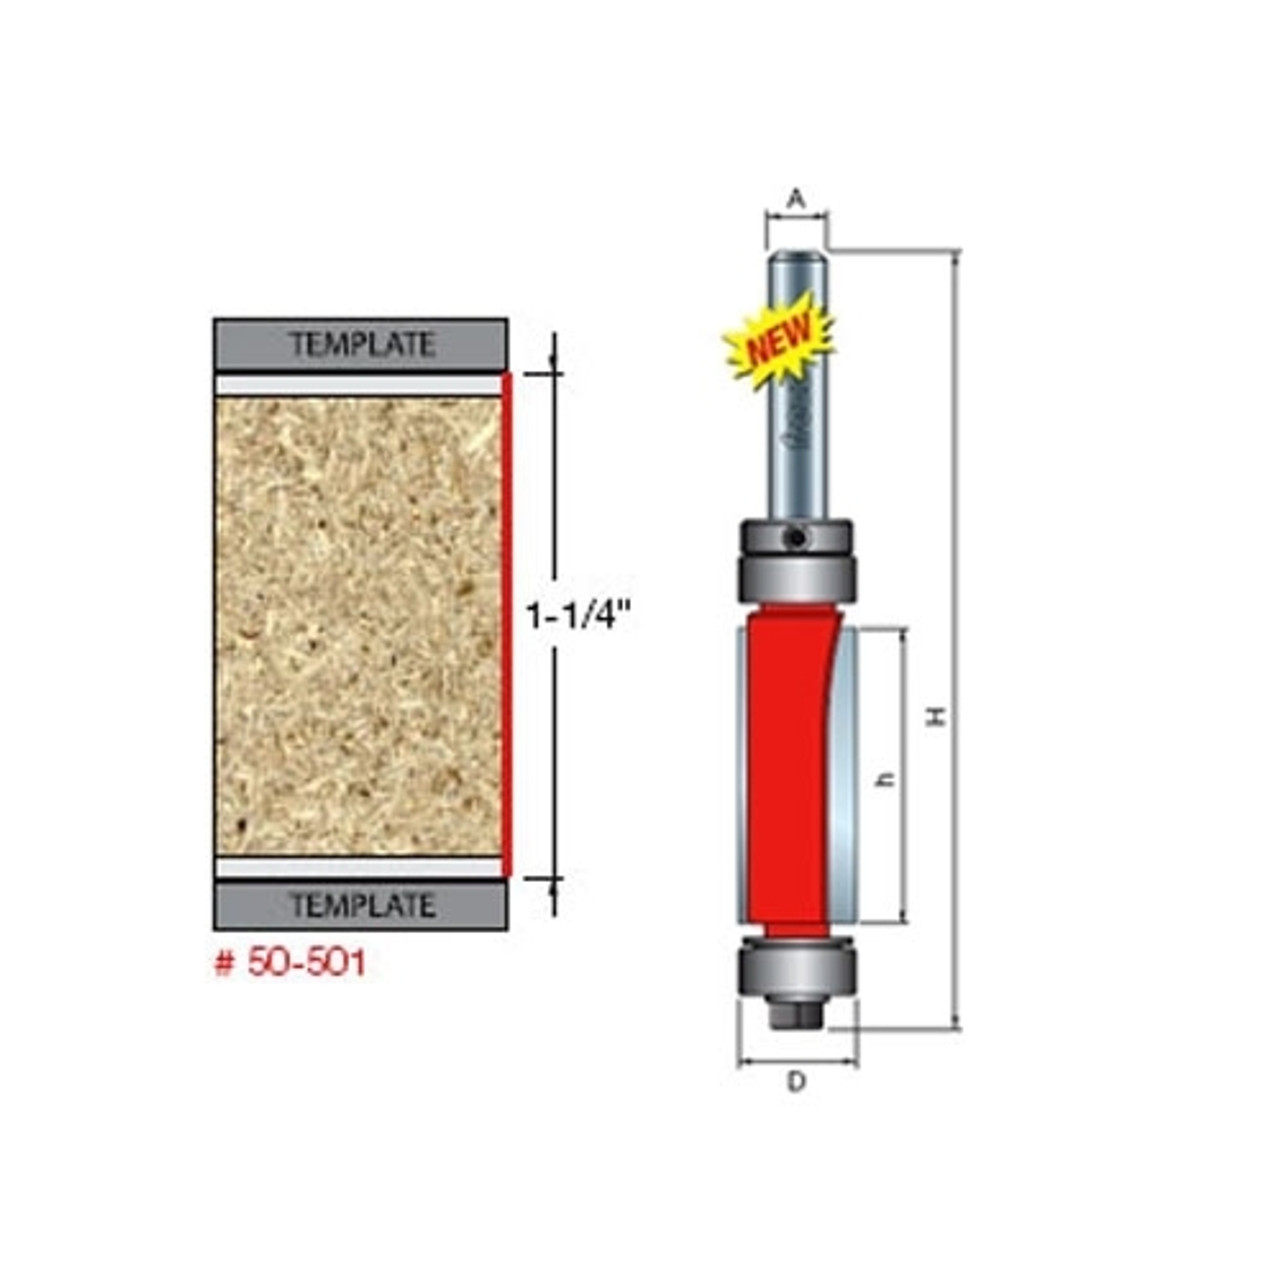 Freud 50-101 1//2-Inch Diameter Top Bearing Flush Trim Router Bit with 1//4-Inch Shank